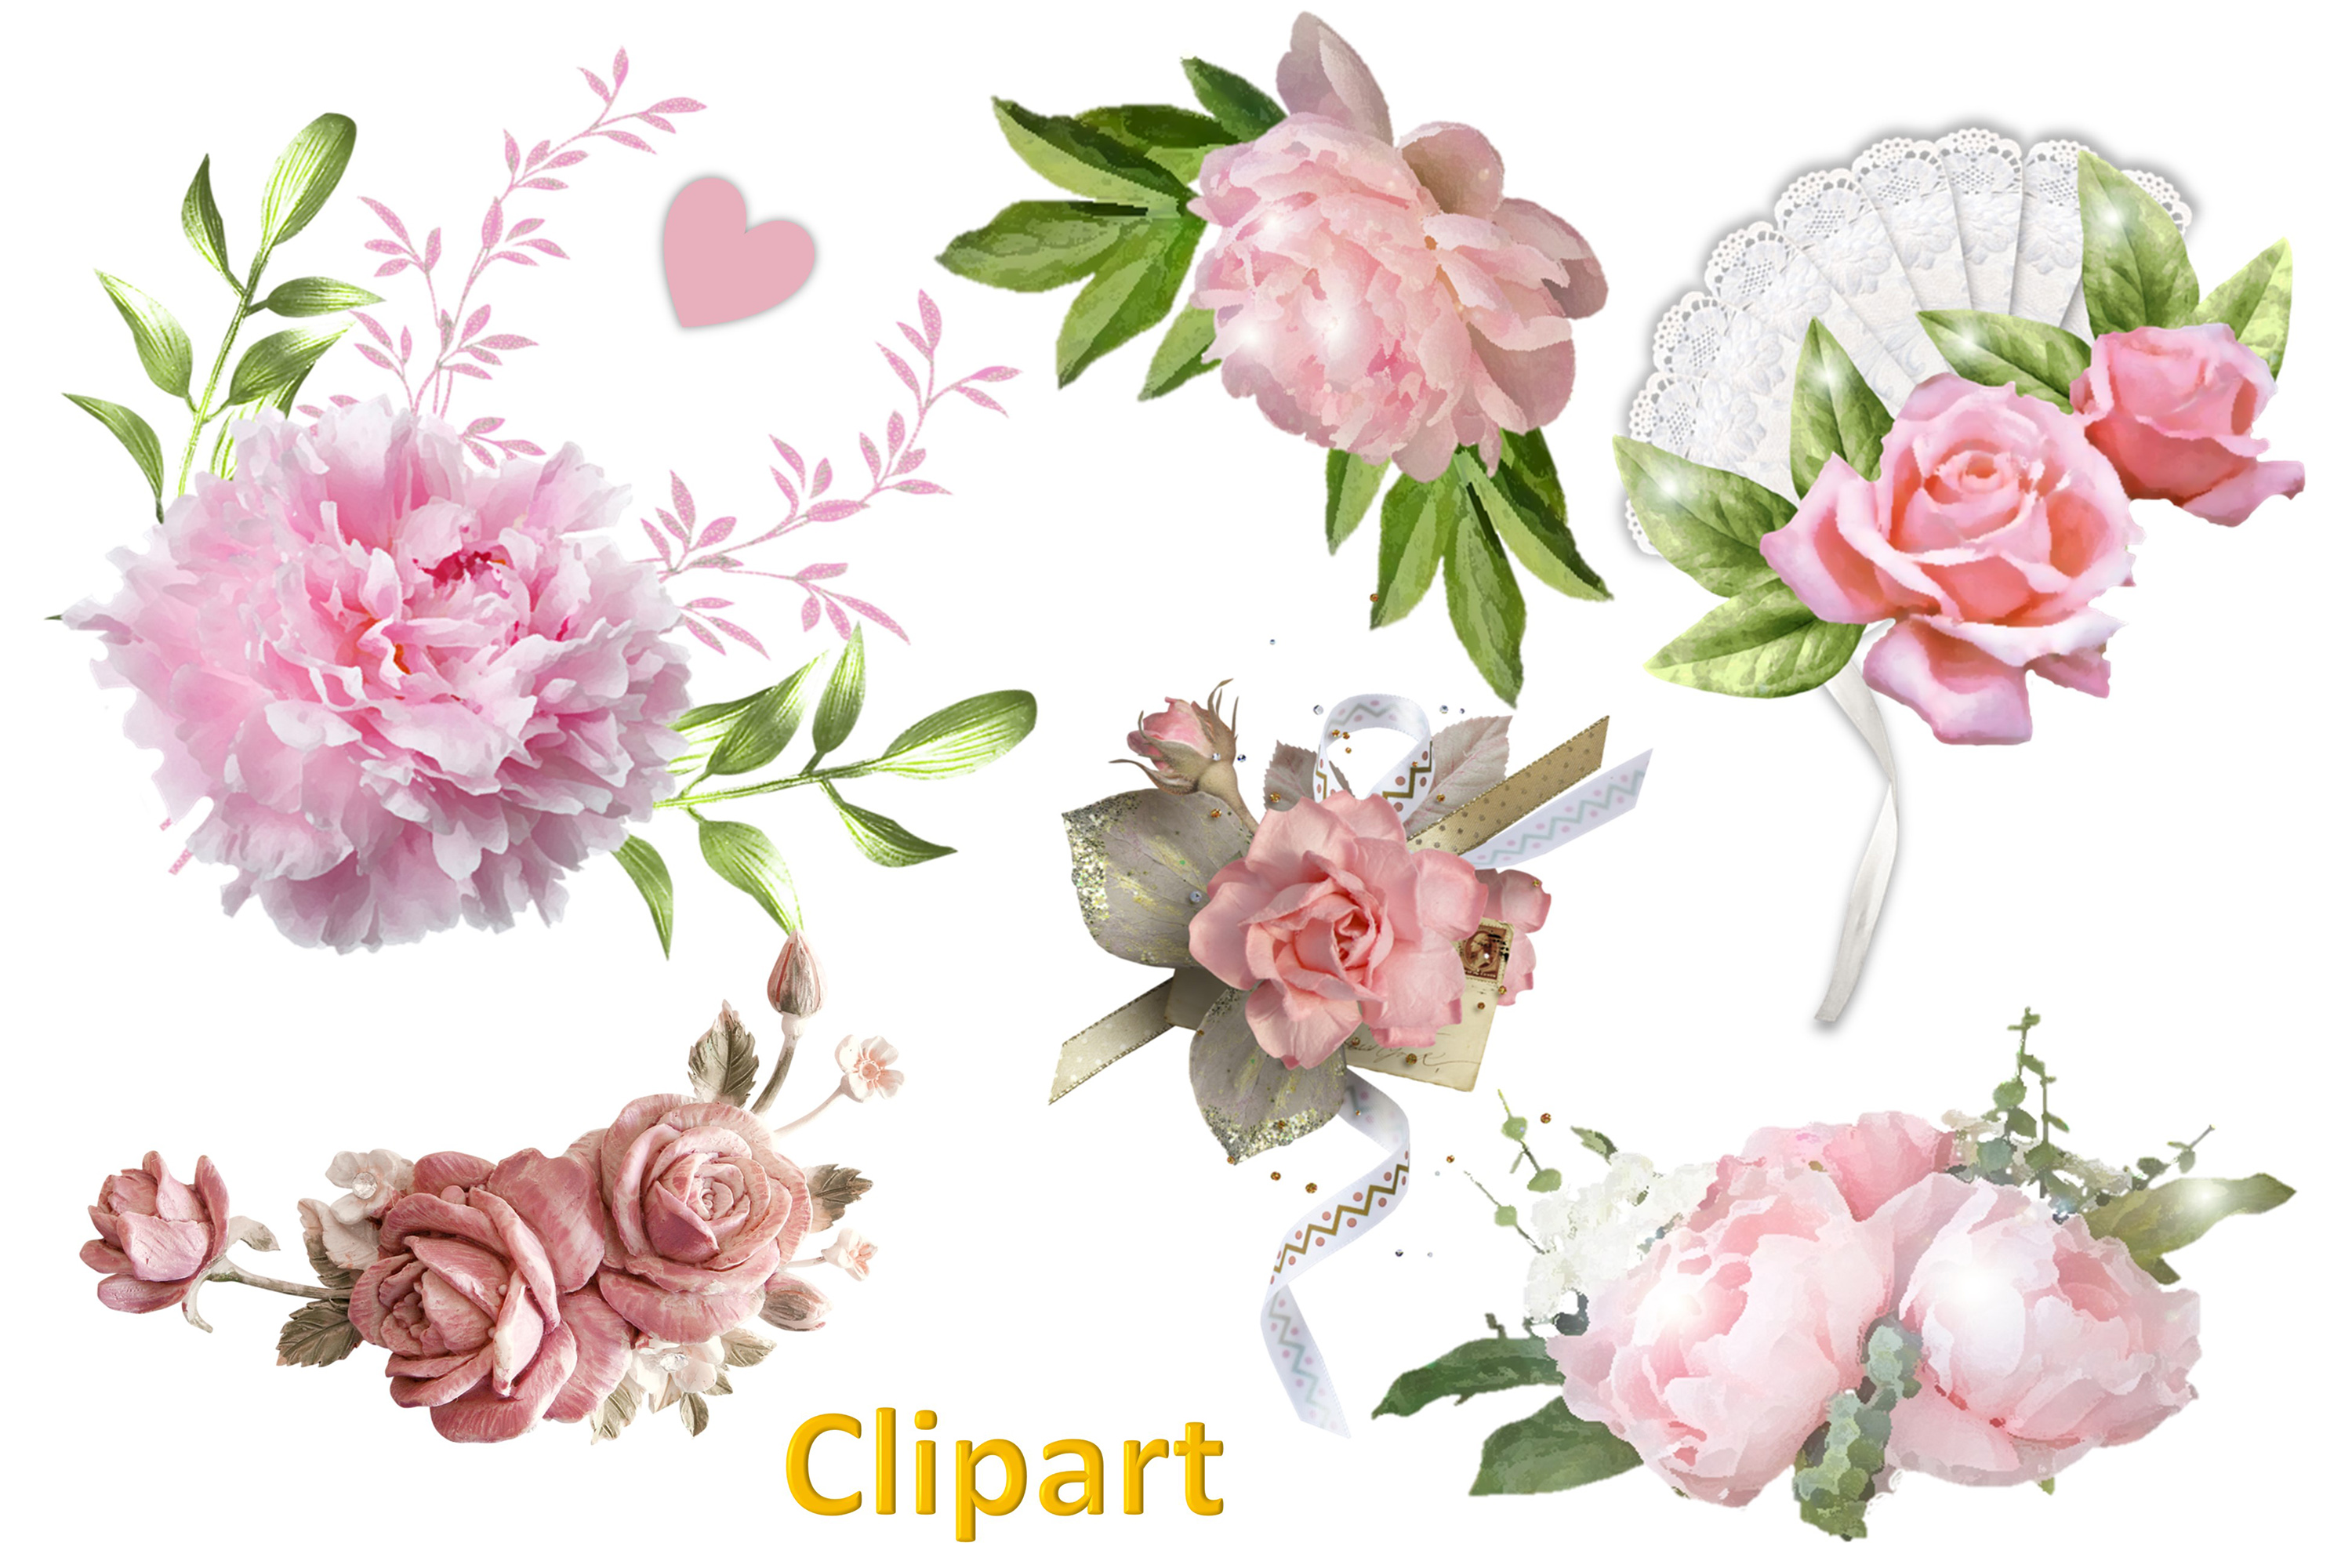 Shabby Chic Vintage backgrounds, Ephemera and Clipart Pmgs example image 10